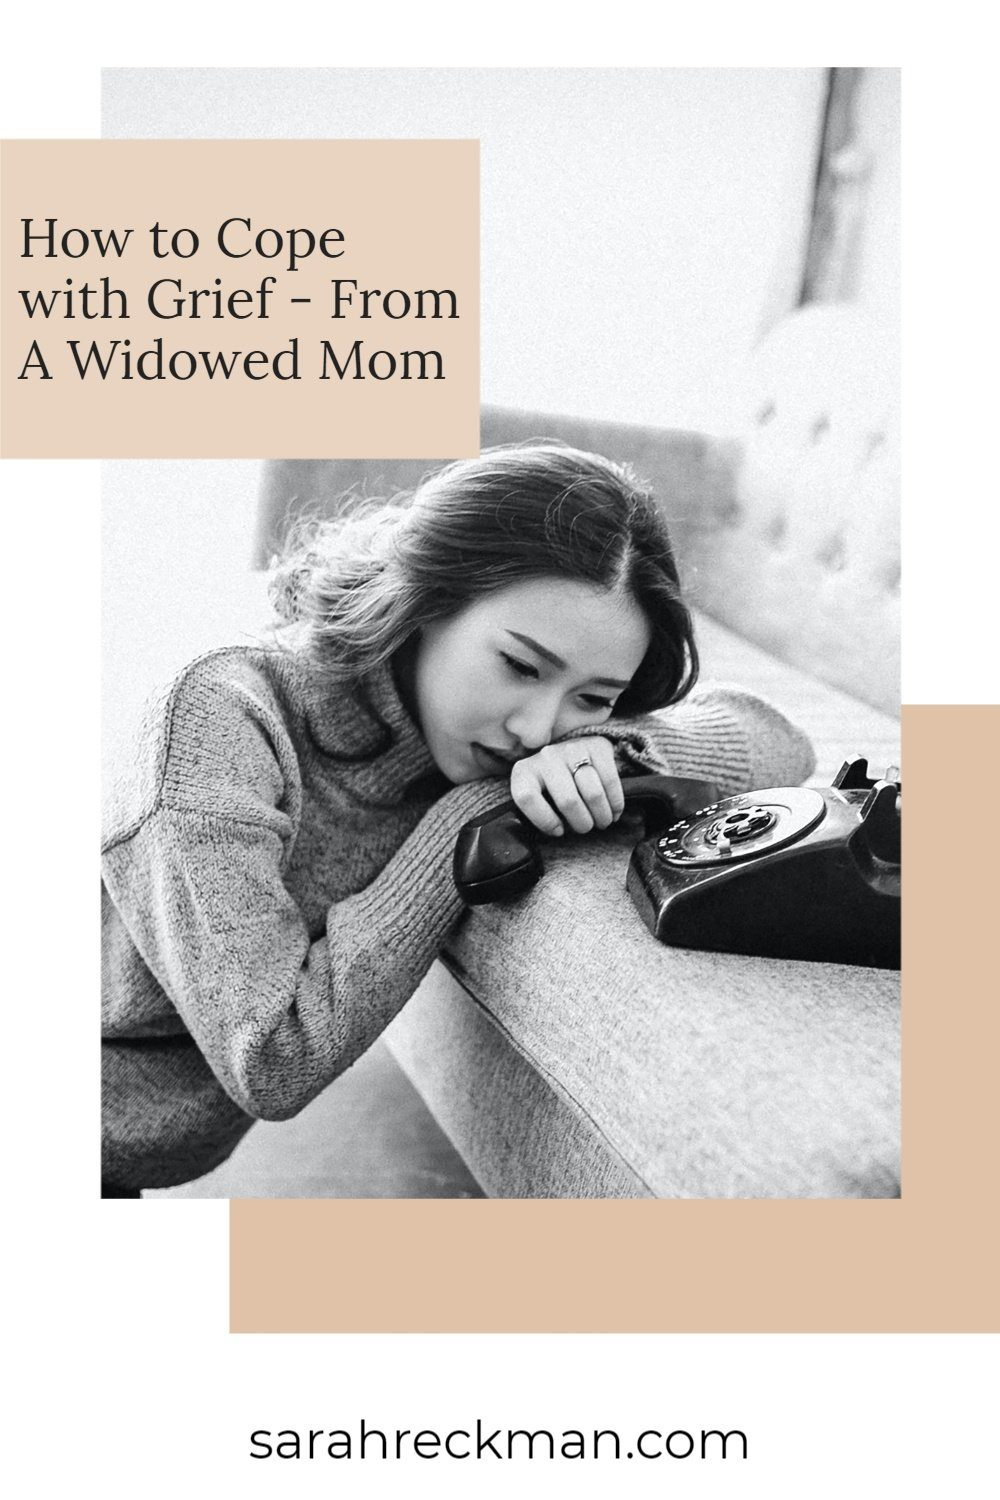 learning how to cope with grief during a pandemic